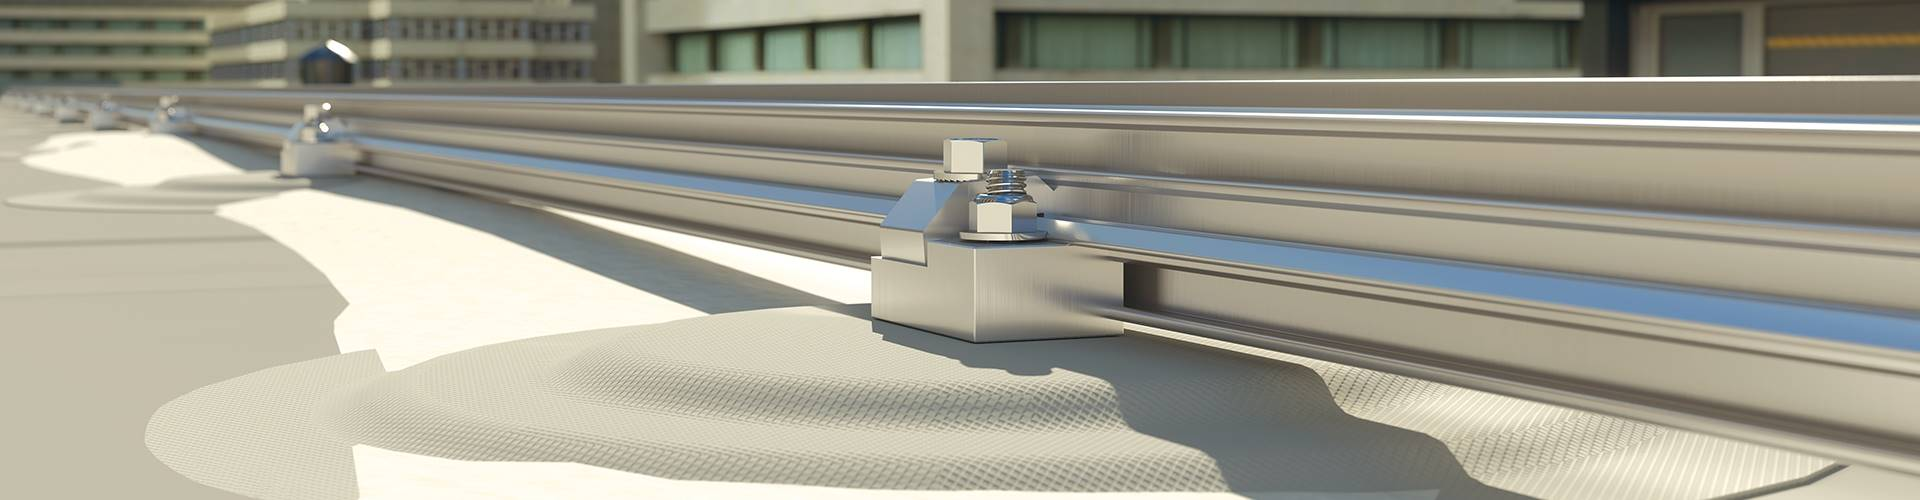 Snow Guards for Membrane Roofing - ColorSnap-M®